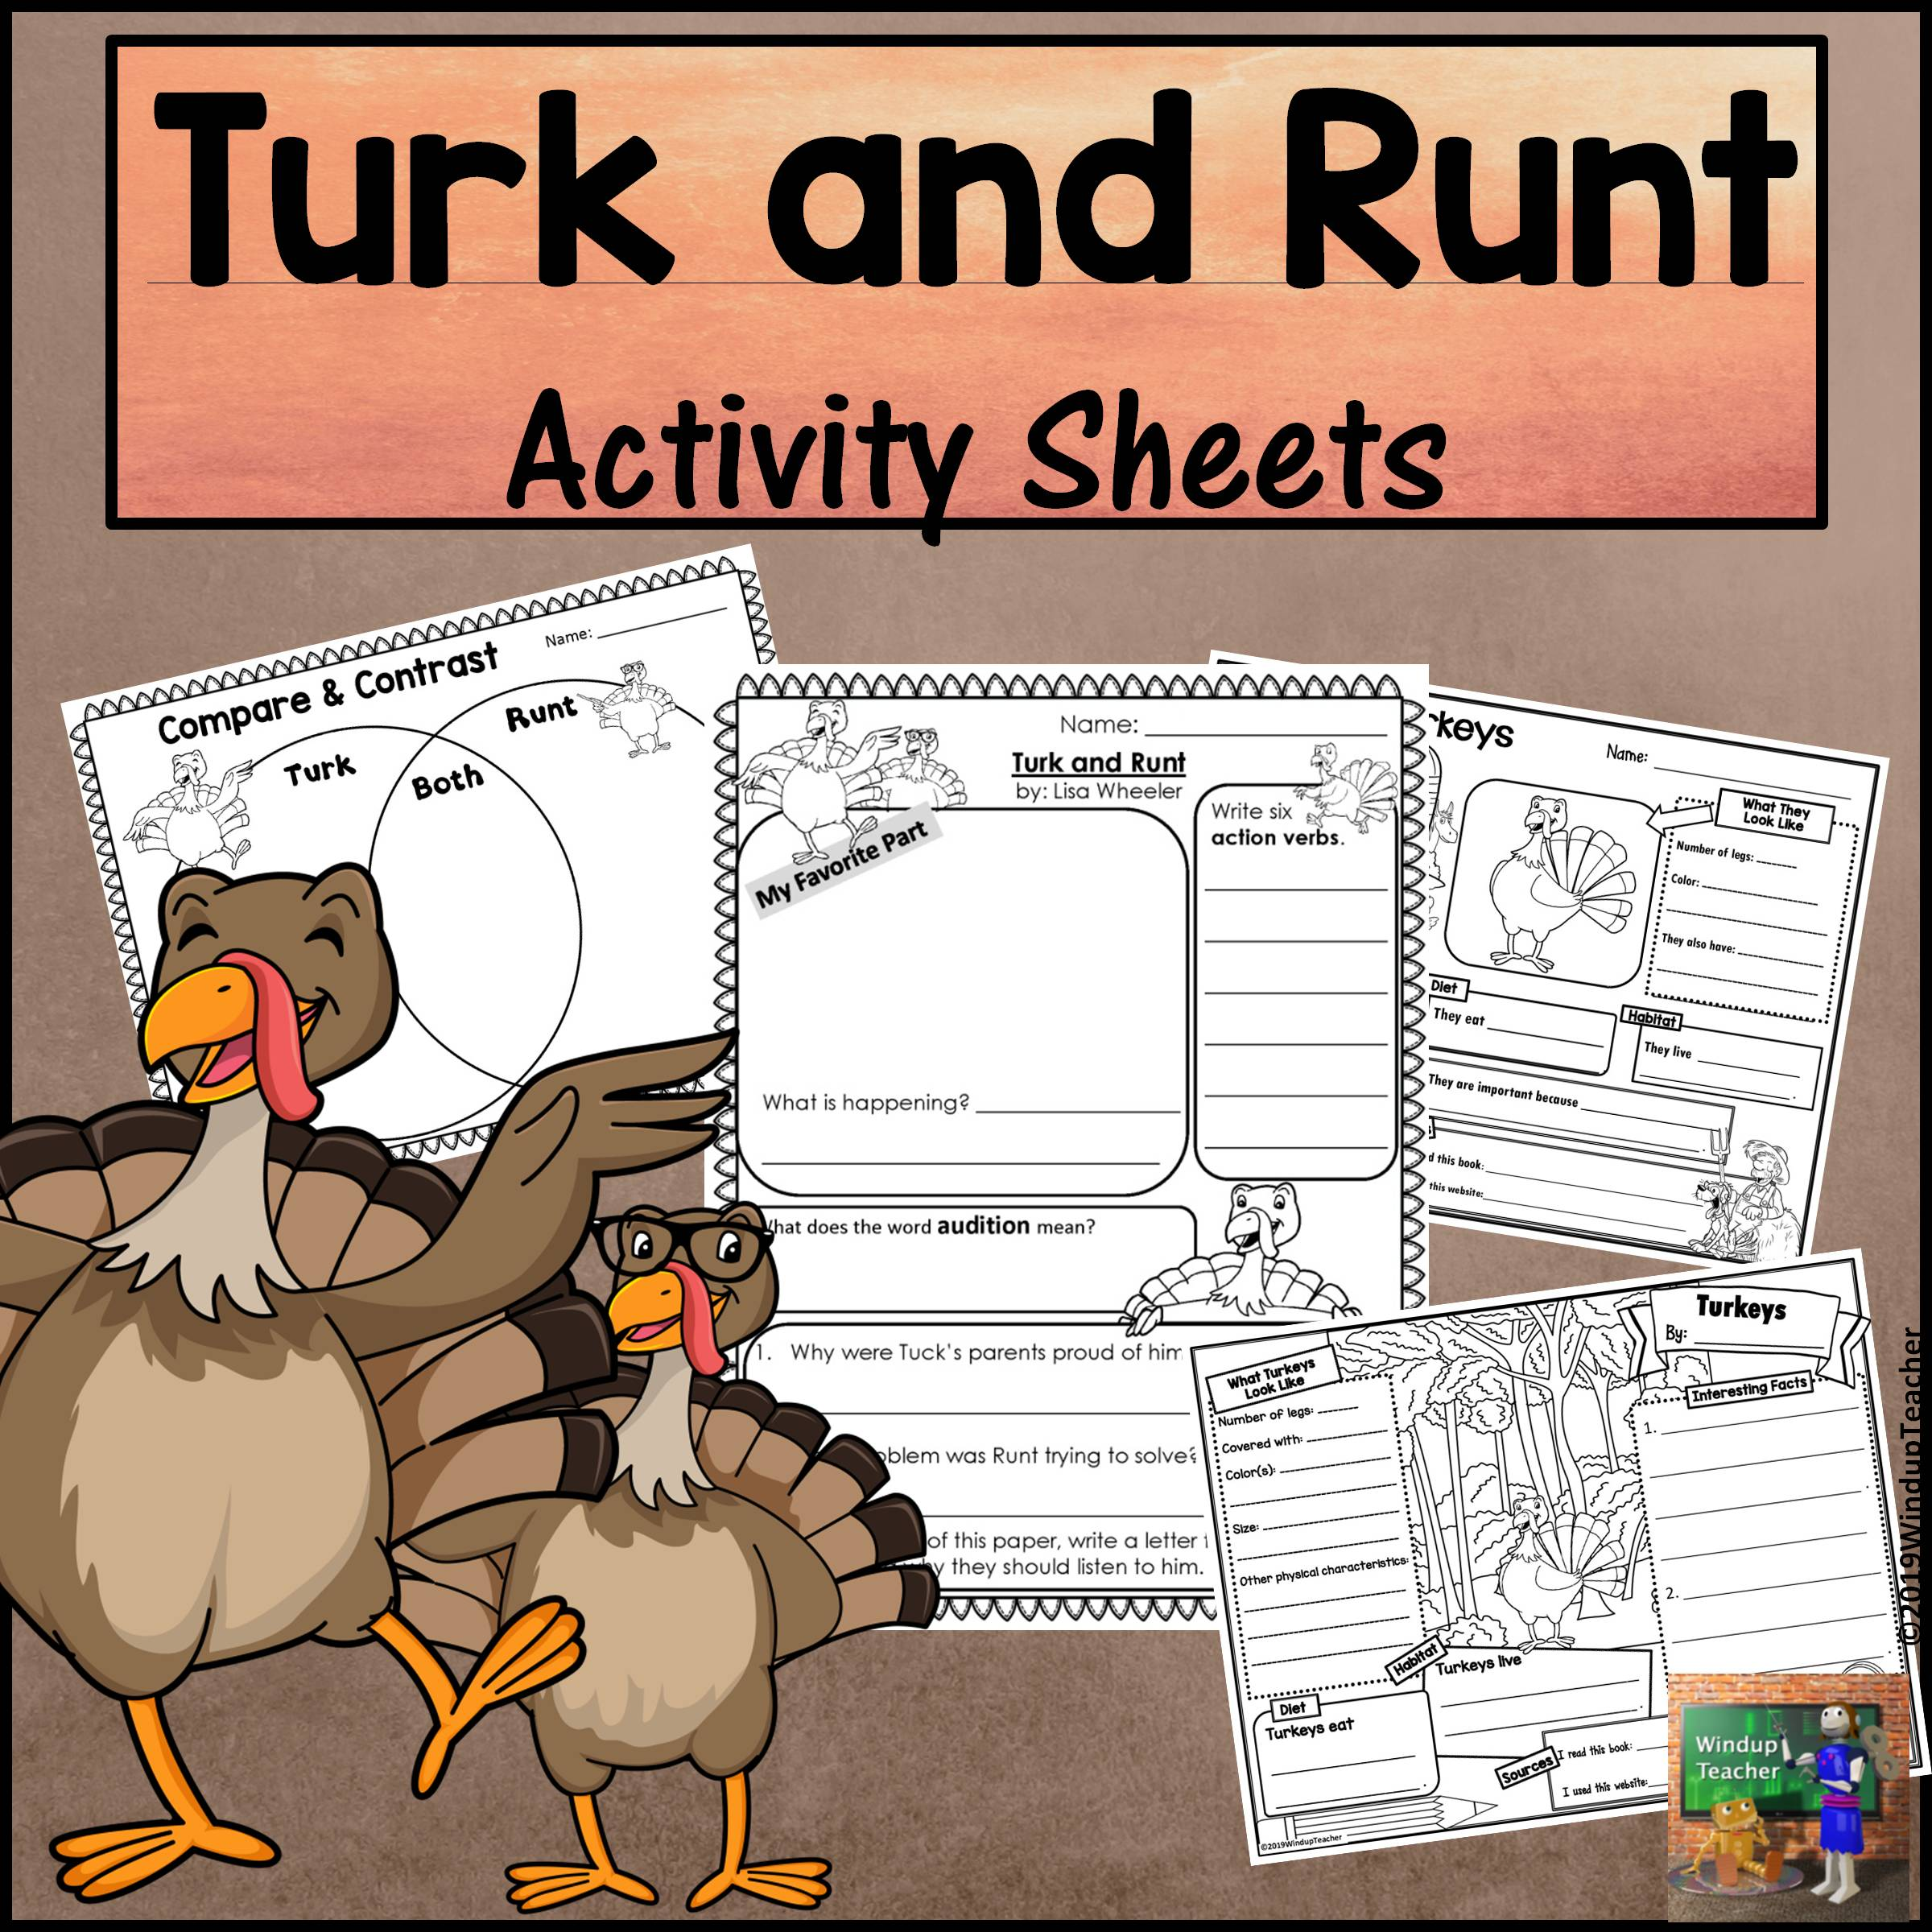 Turk and Runt Activity Sheets Print and GO!